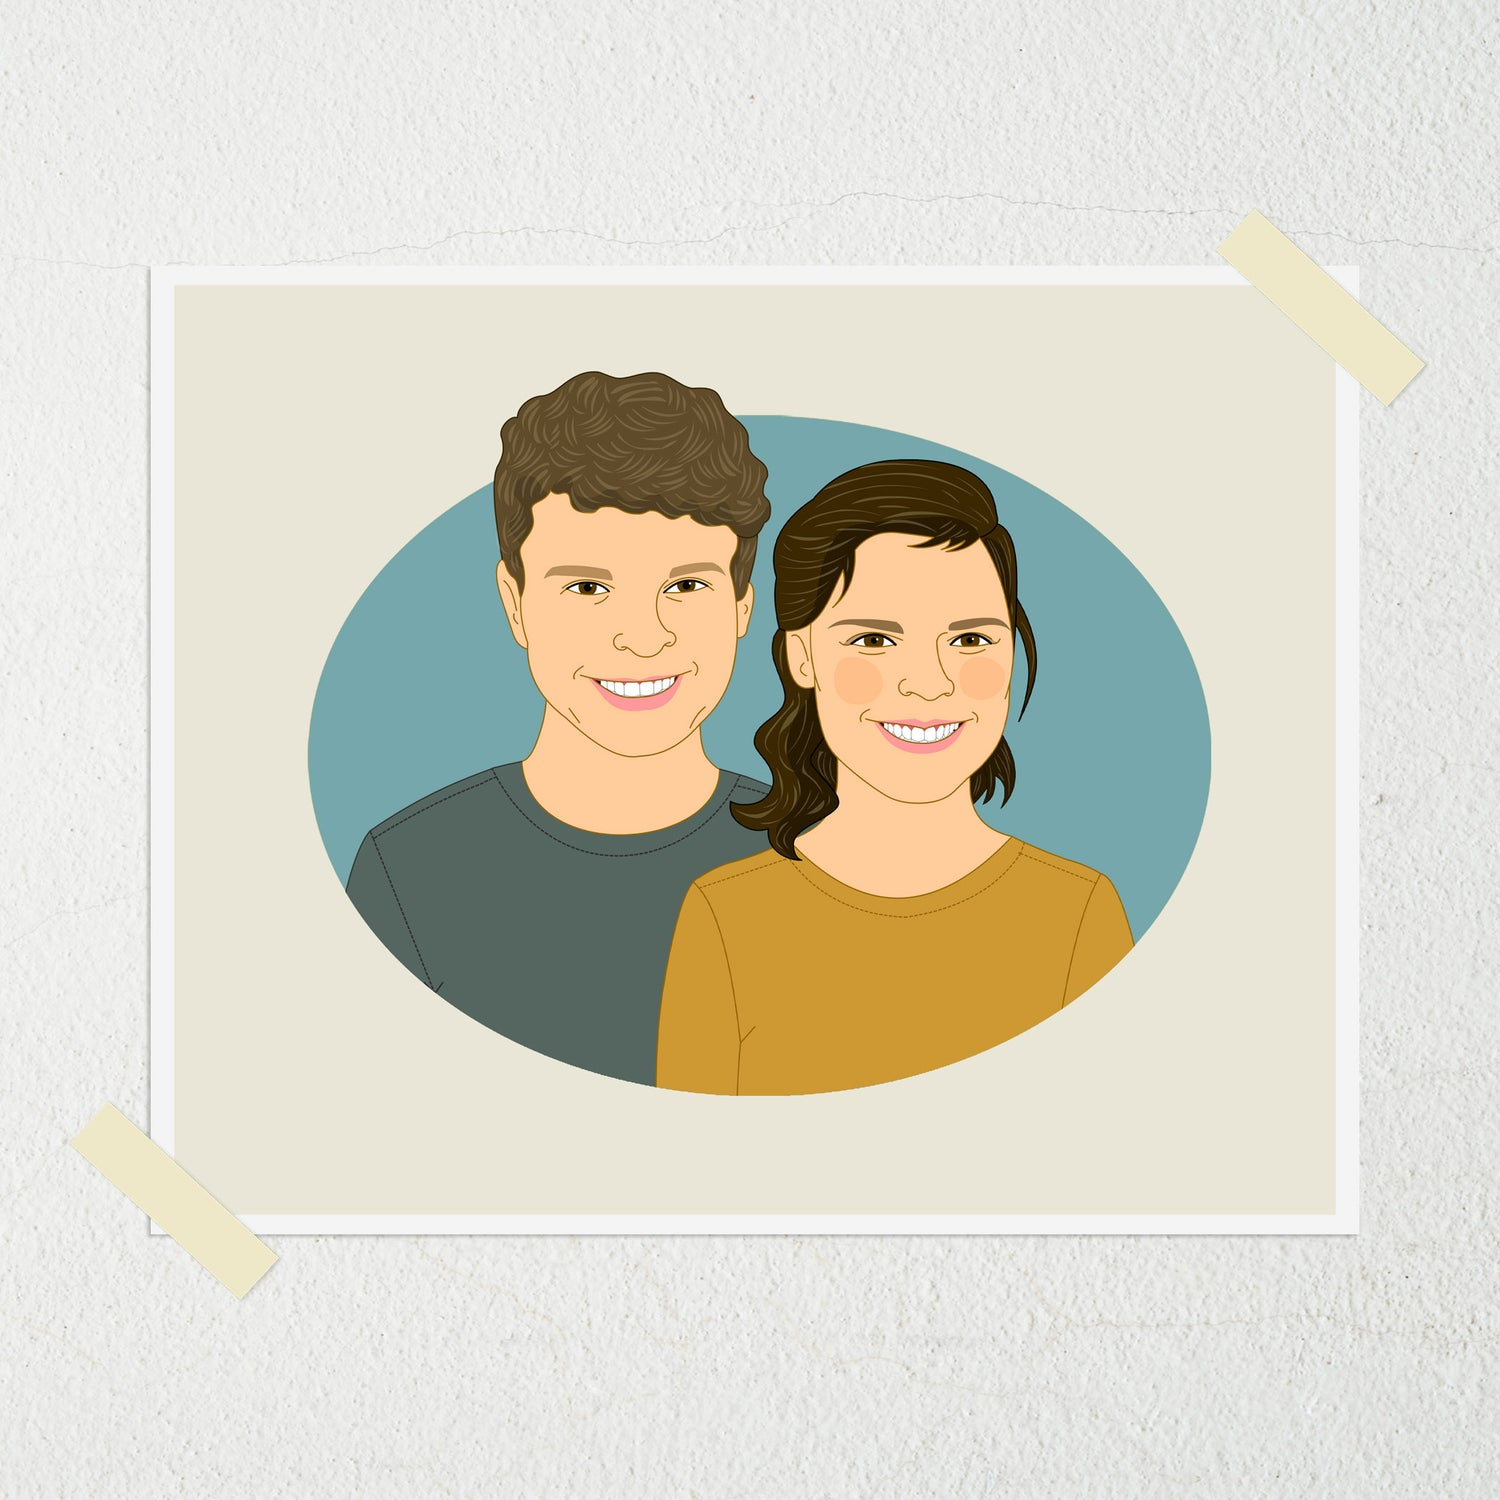 Image of Custom Couple Portrait from photo. Couple portraits, personalized illustration of 2 people.